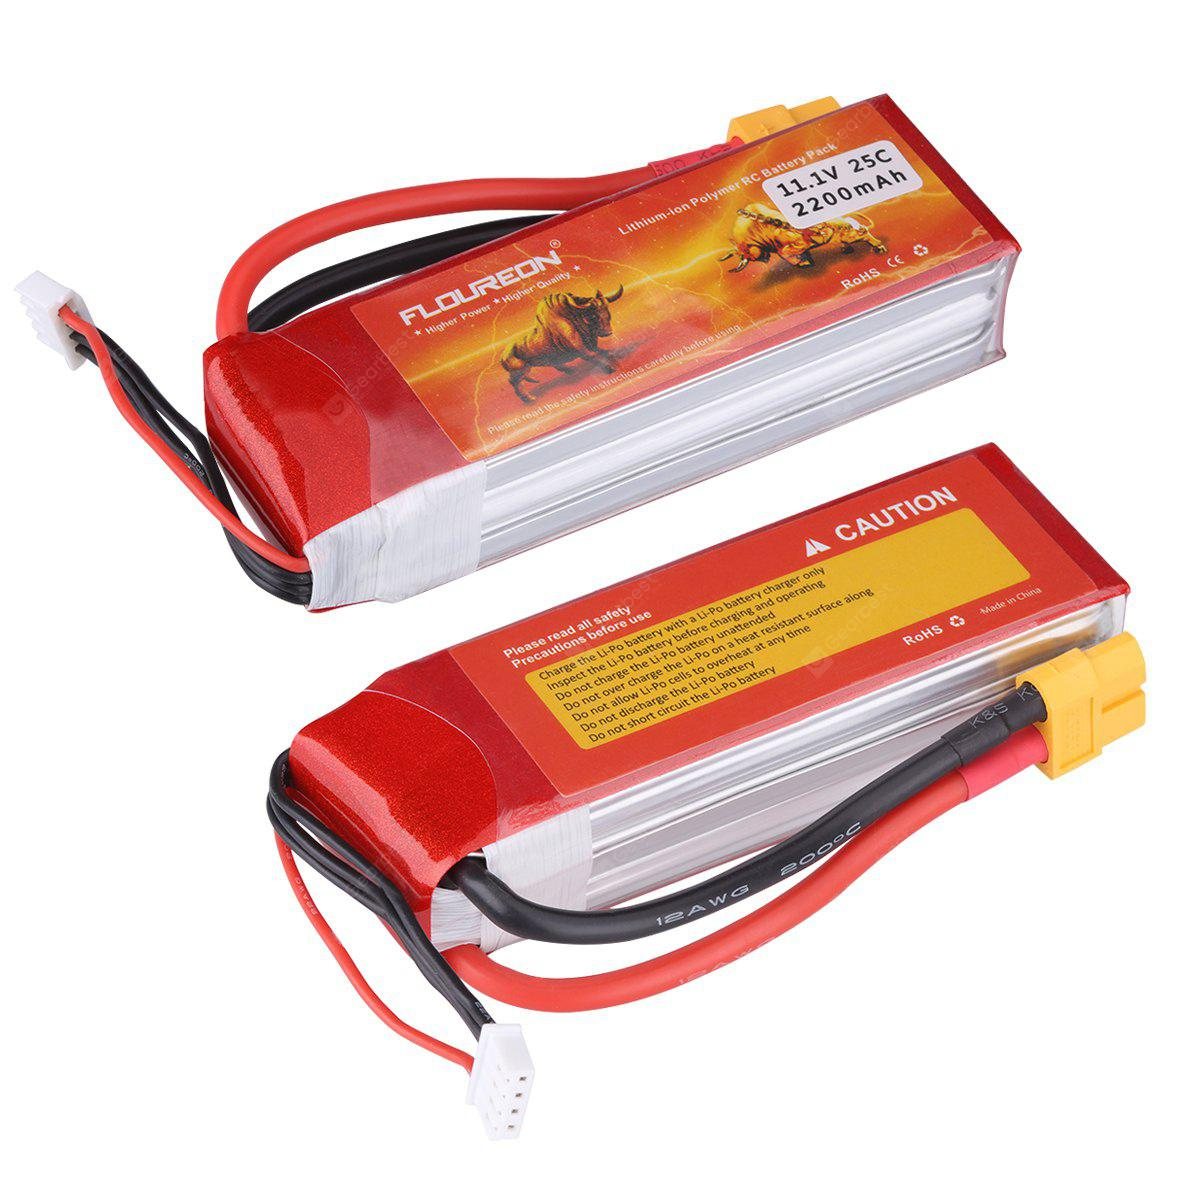 2 X Floureon 3s1p 111v 2200mah 25c With Xt60 Plug Lipo Battery Pack Circuit Pen Ebay For Rc Evader Bx Car Truck Truggy Airplane Uav Drone Fpv 4005 Free